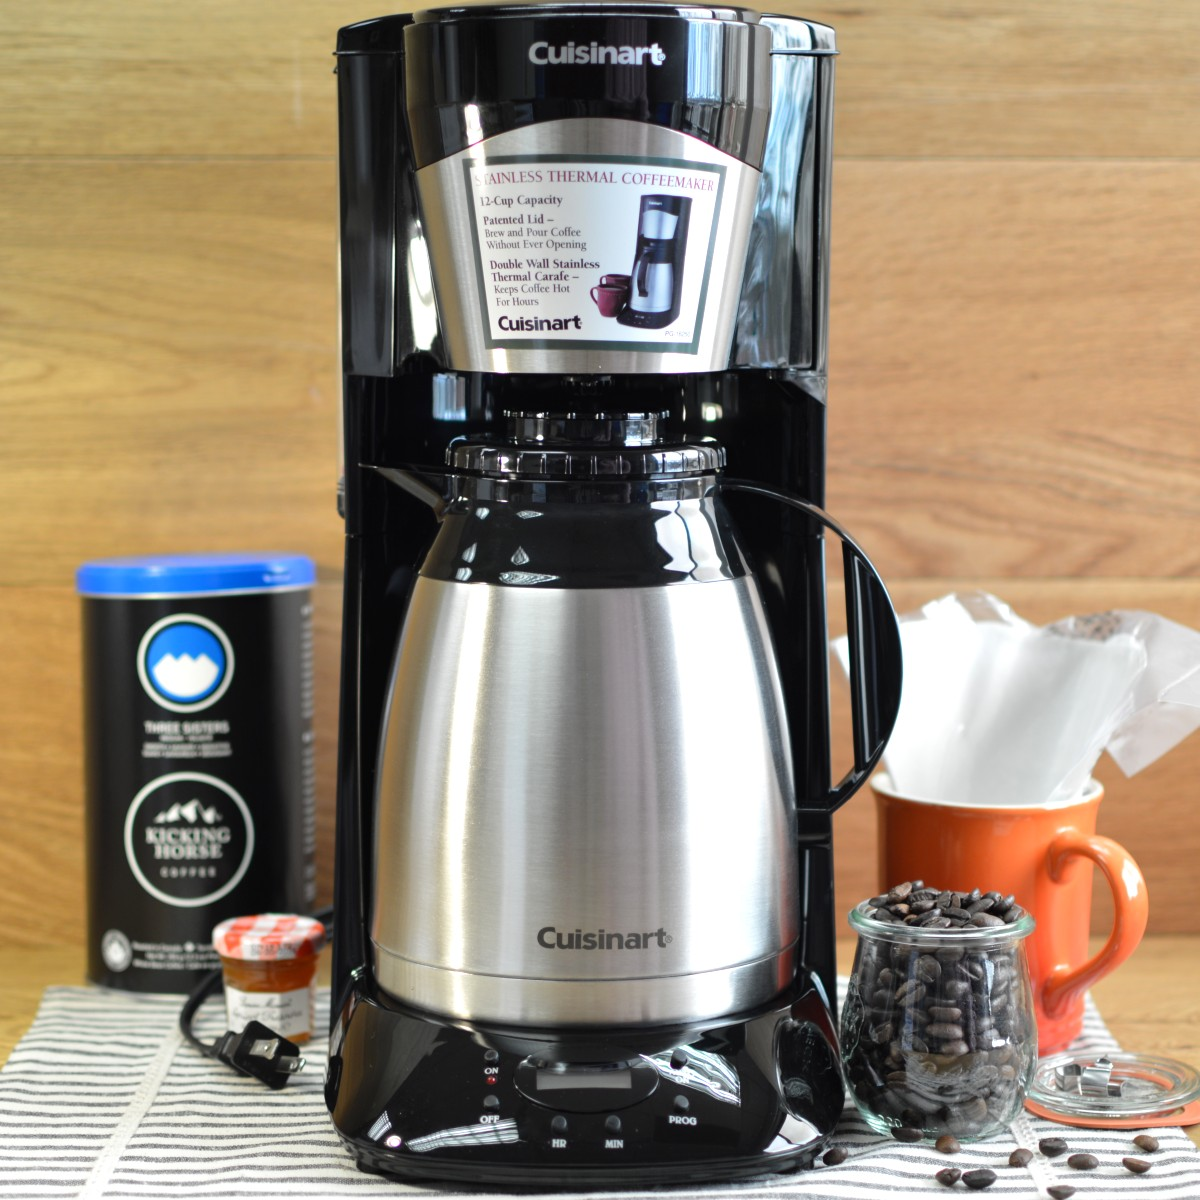 Cuisinart coffee maker stainless steel carafe - Cuisinart Coffee Maker Stainless Steel Carafe 6